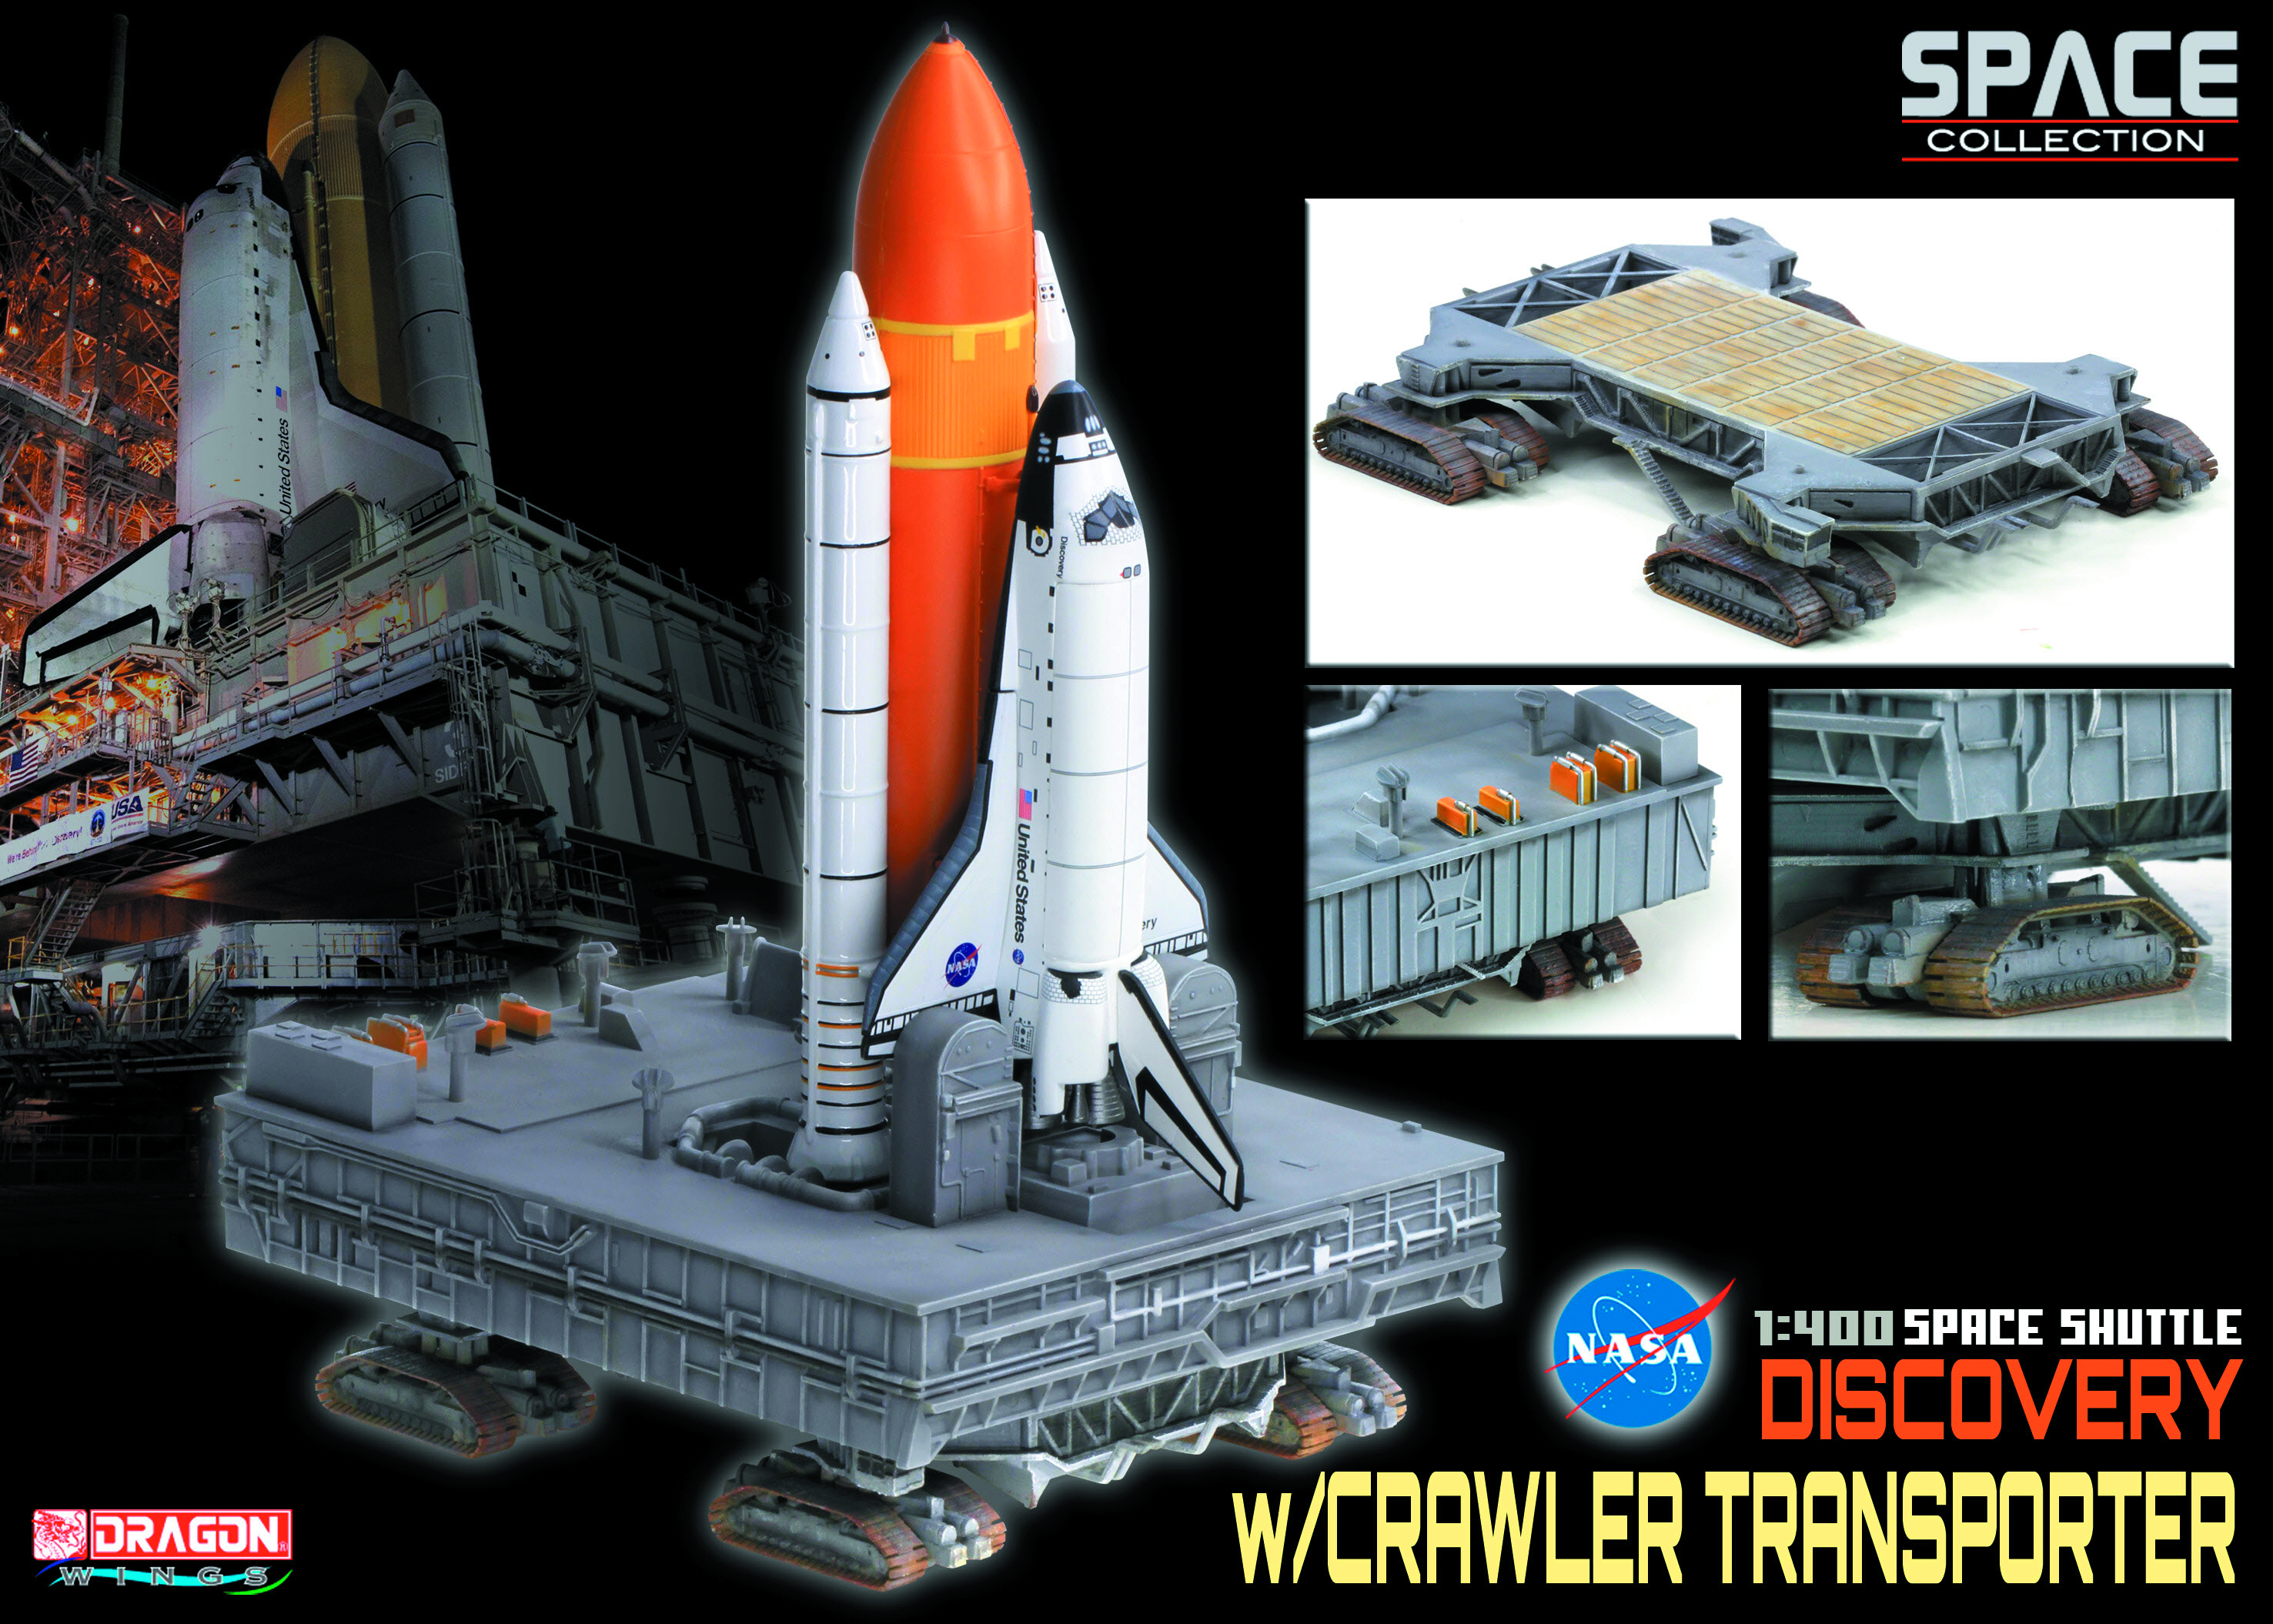 NASA SPACE SHUTTLE DISCOVERY W/CRAWLER 1/400 SCL MDL